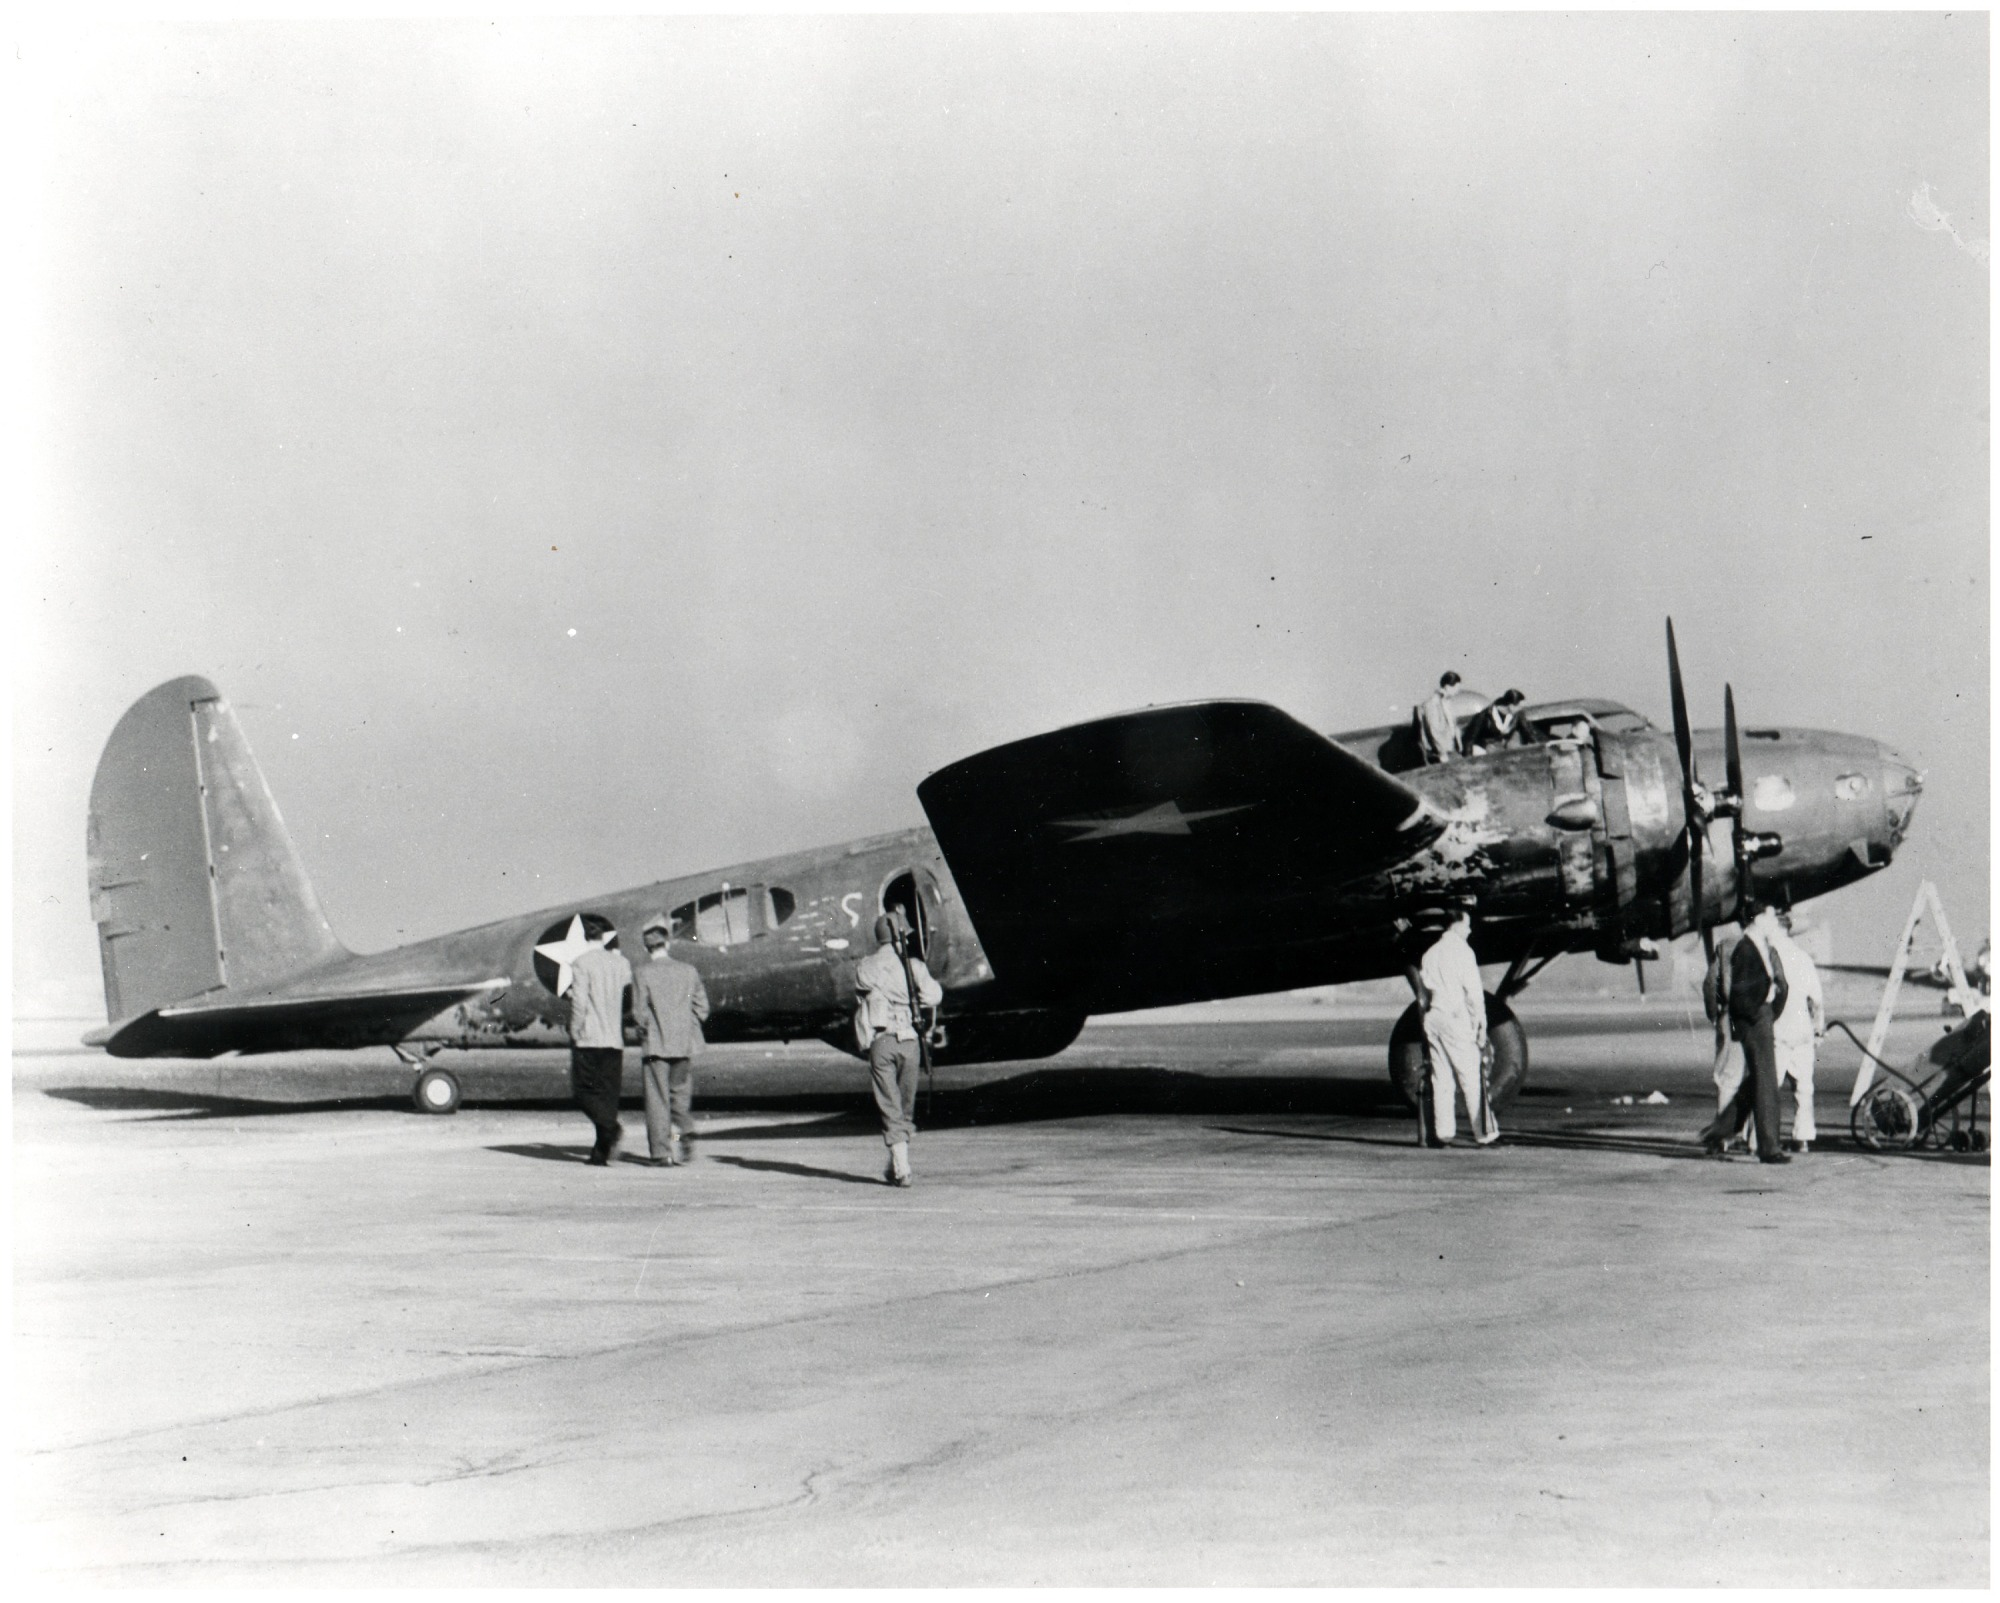 The Swoose: Odyssey of a B-17 Collection